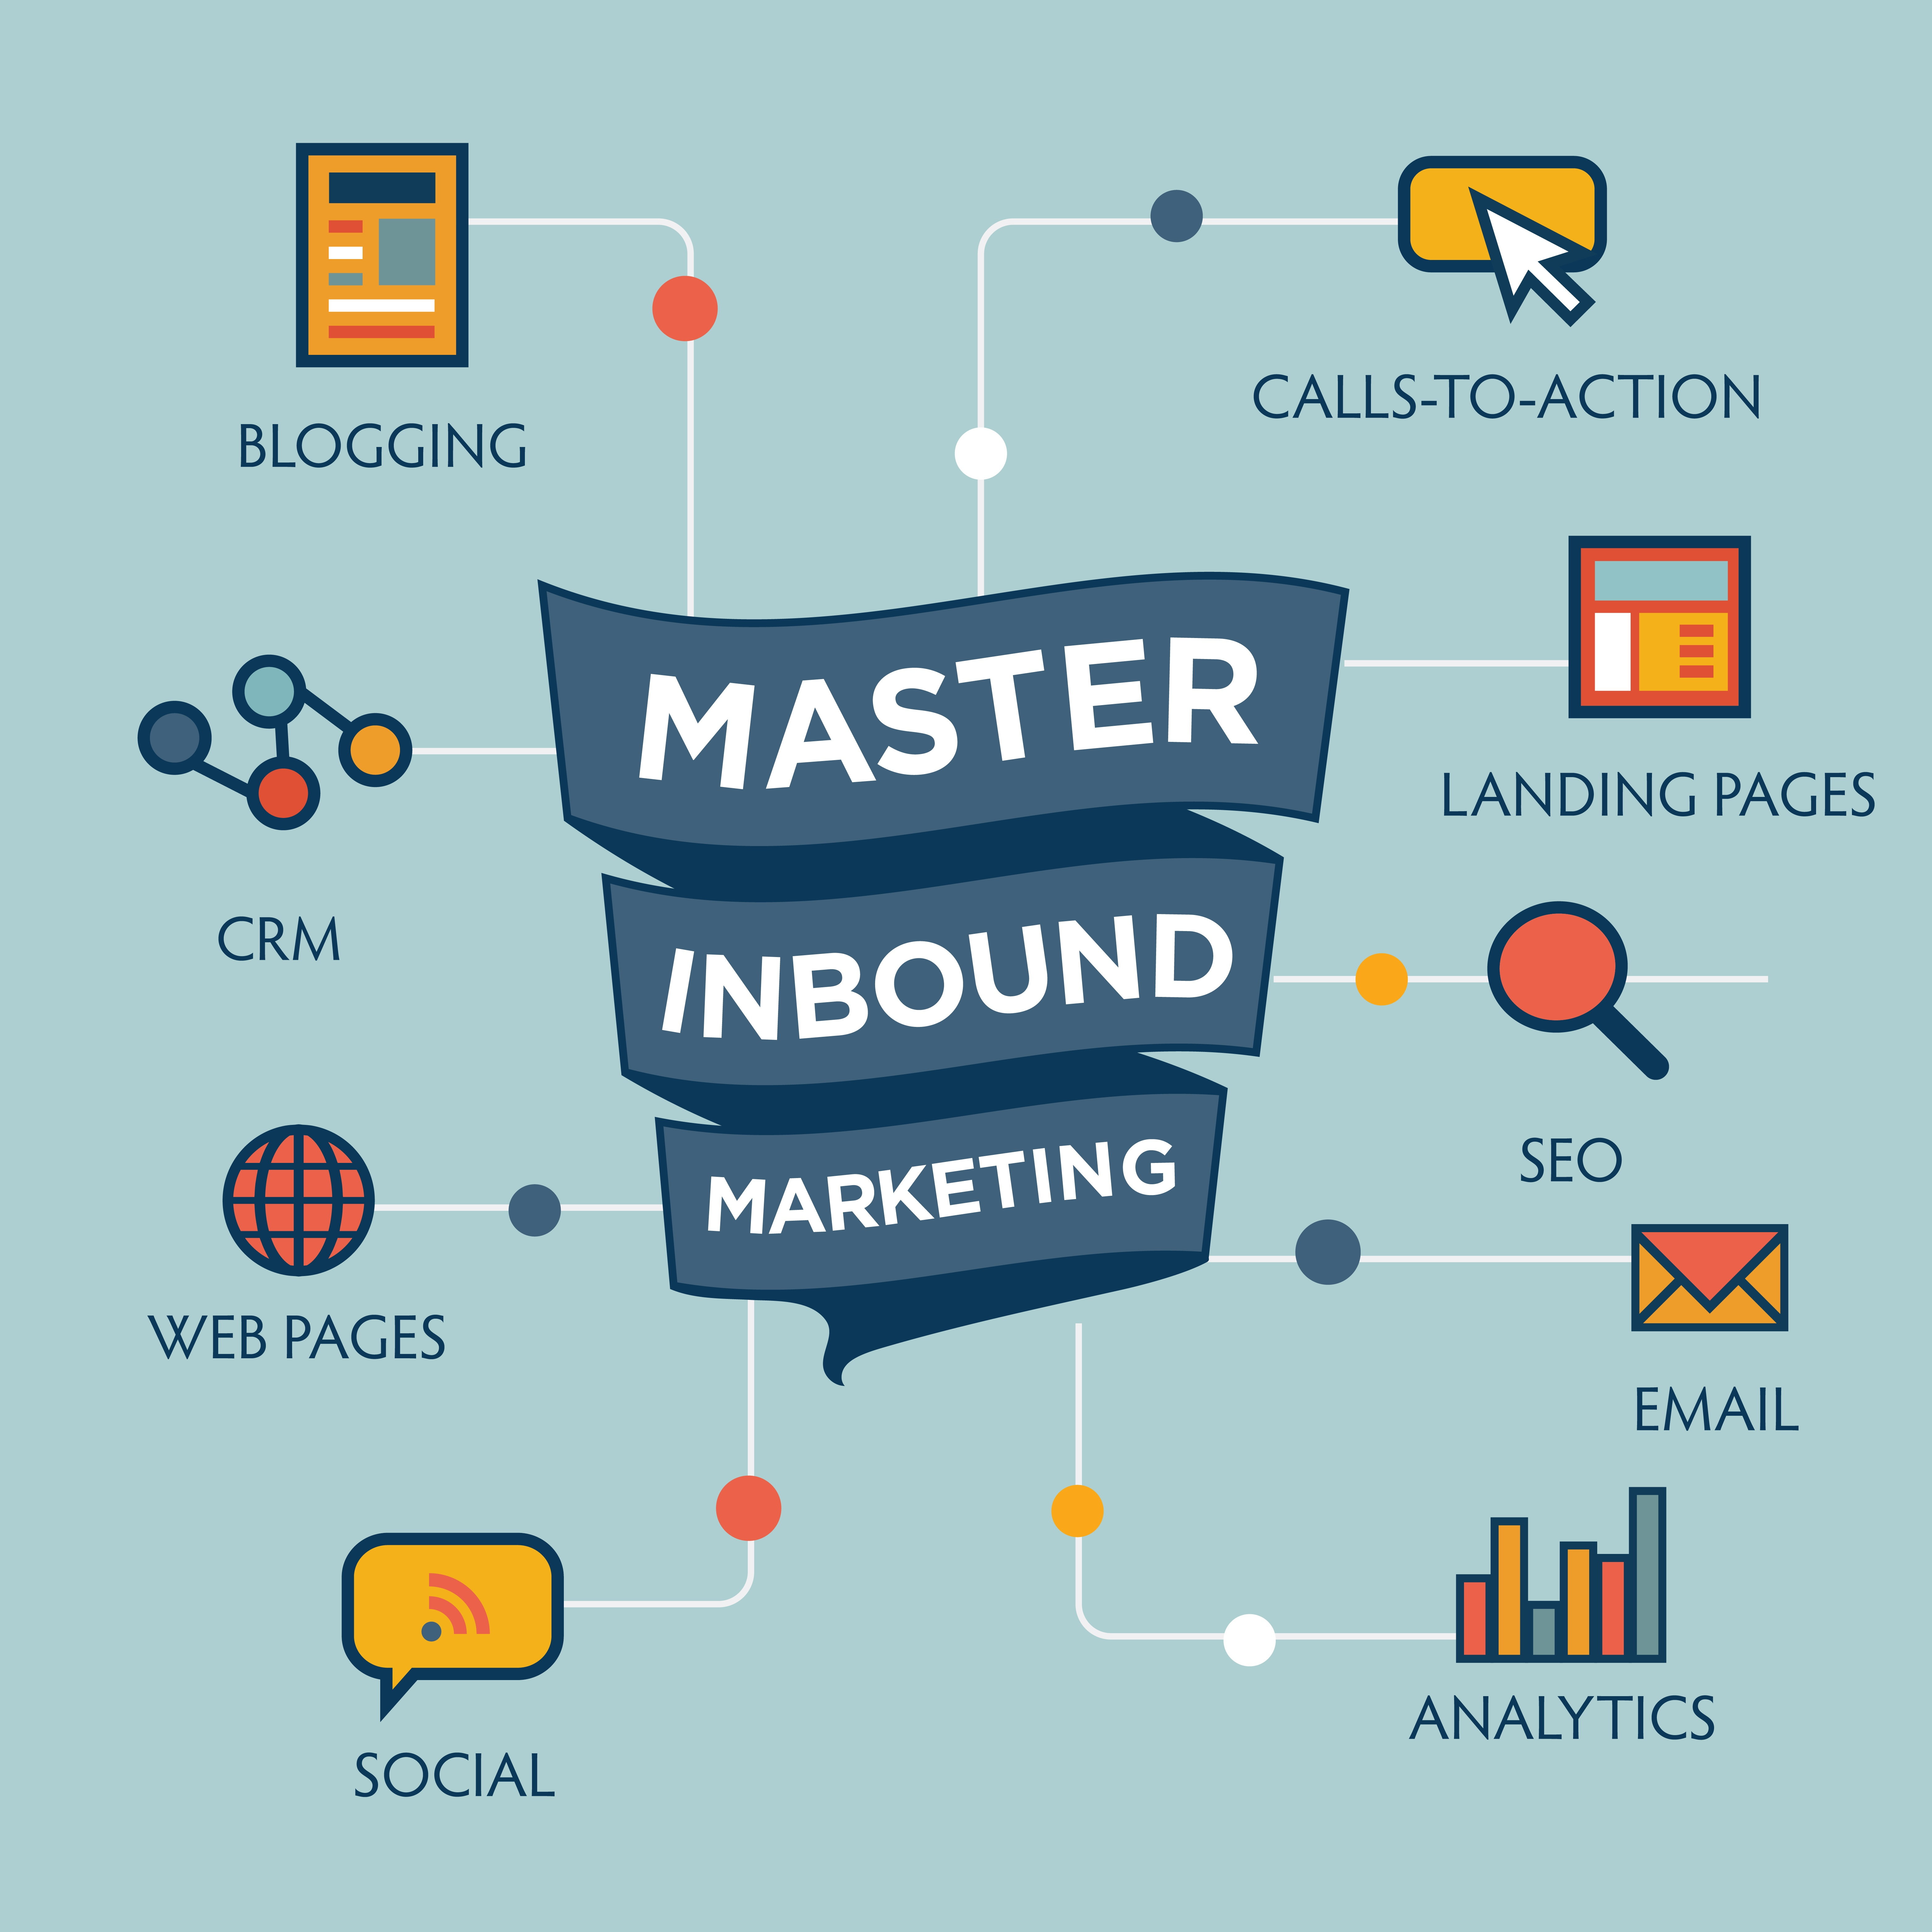 prticas_inbound_marketing.jpg